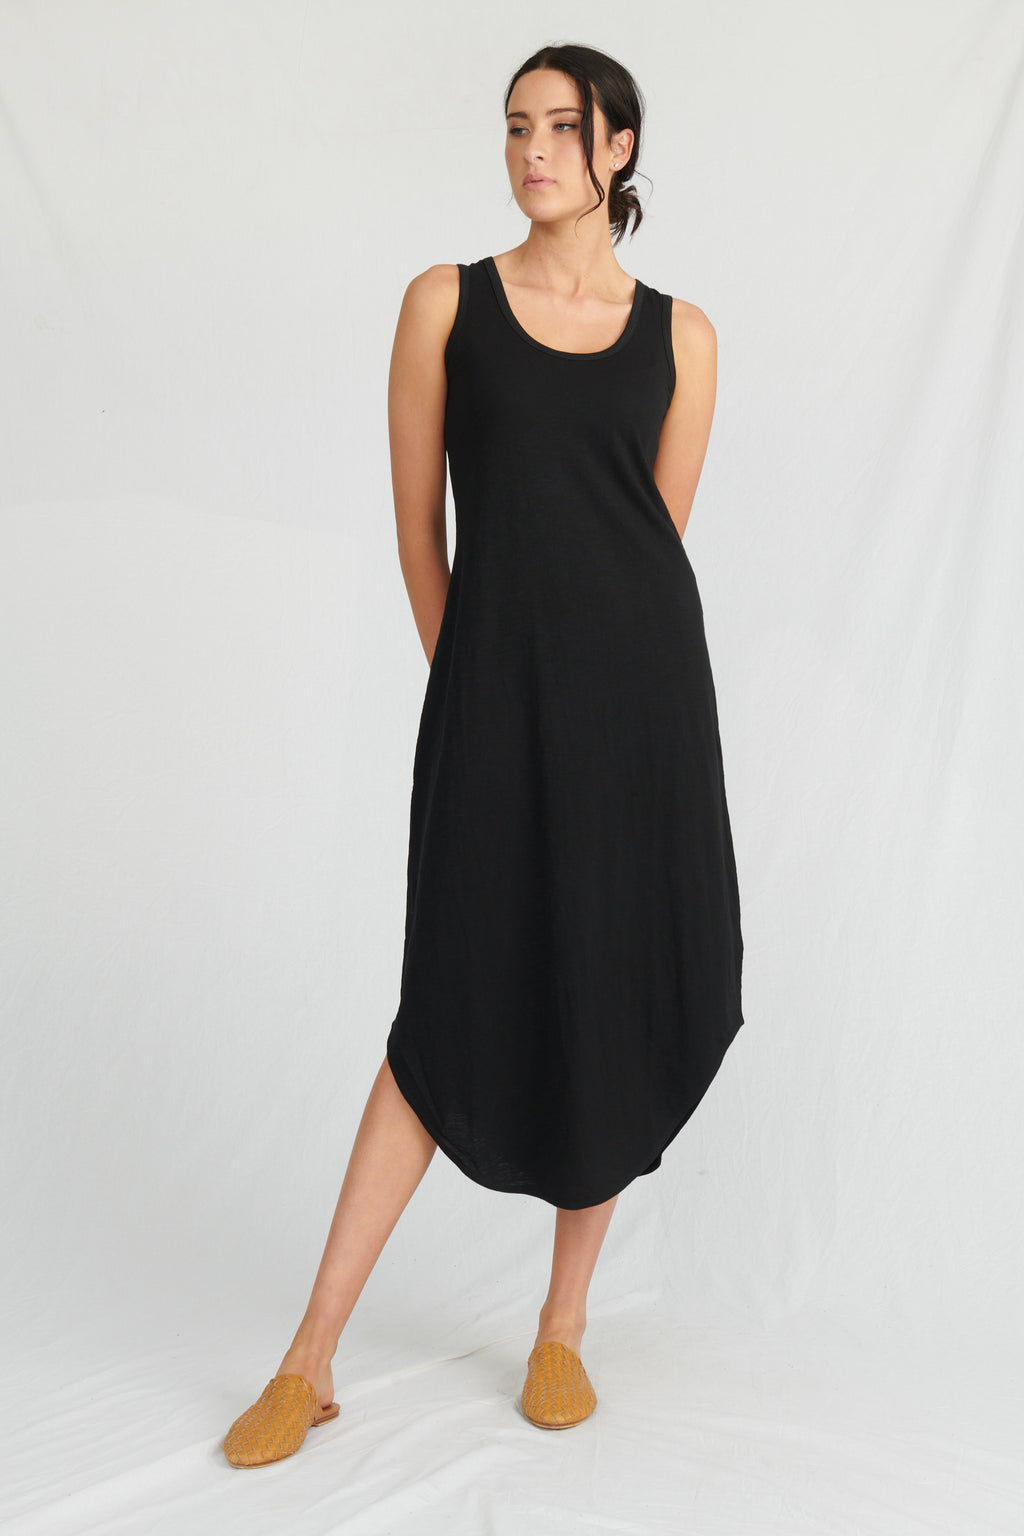 Lulu Organics Cotton Essentials - Hamptons Dress Black